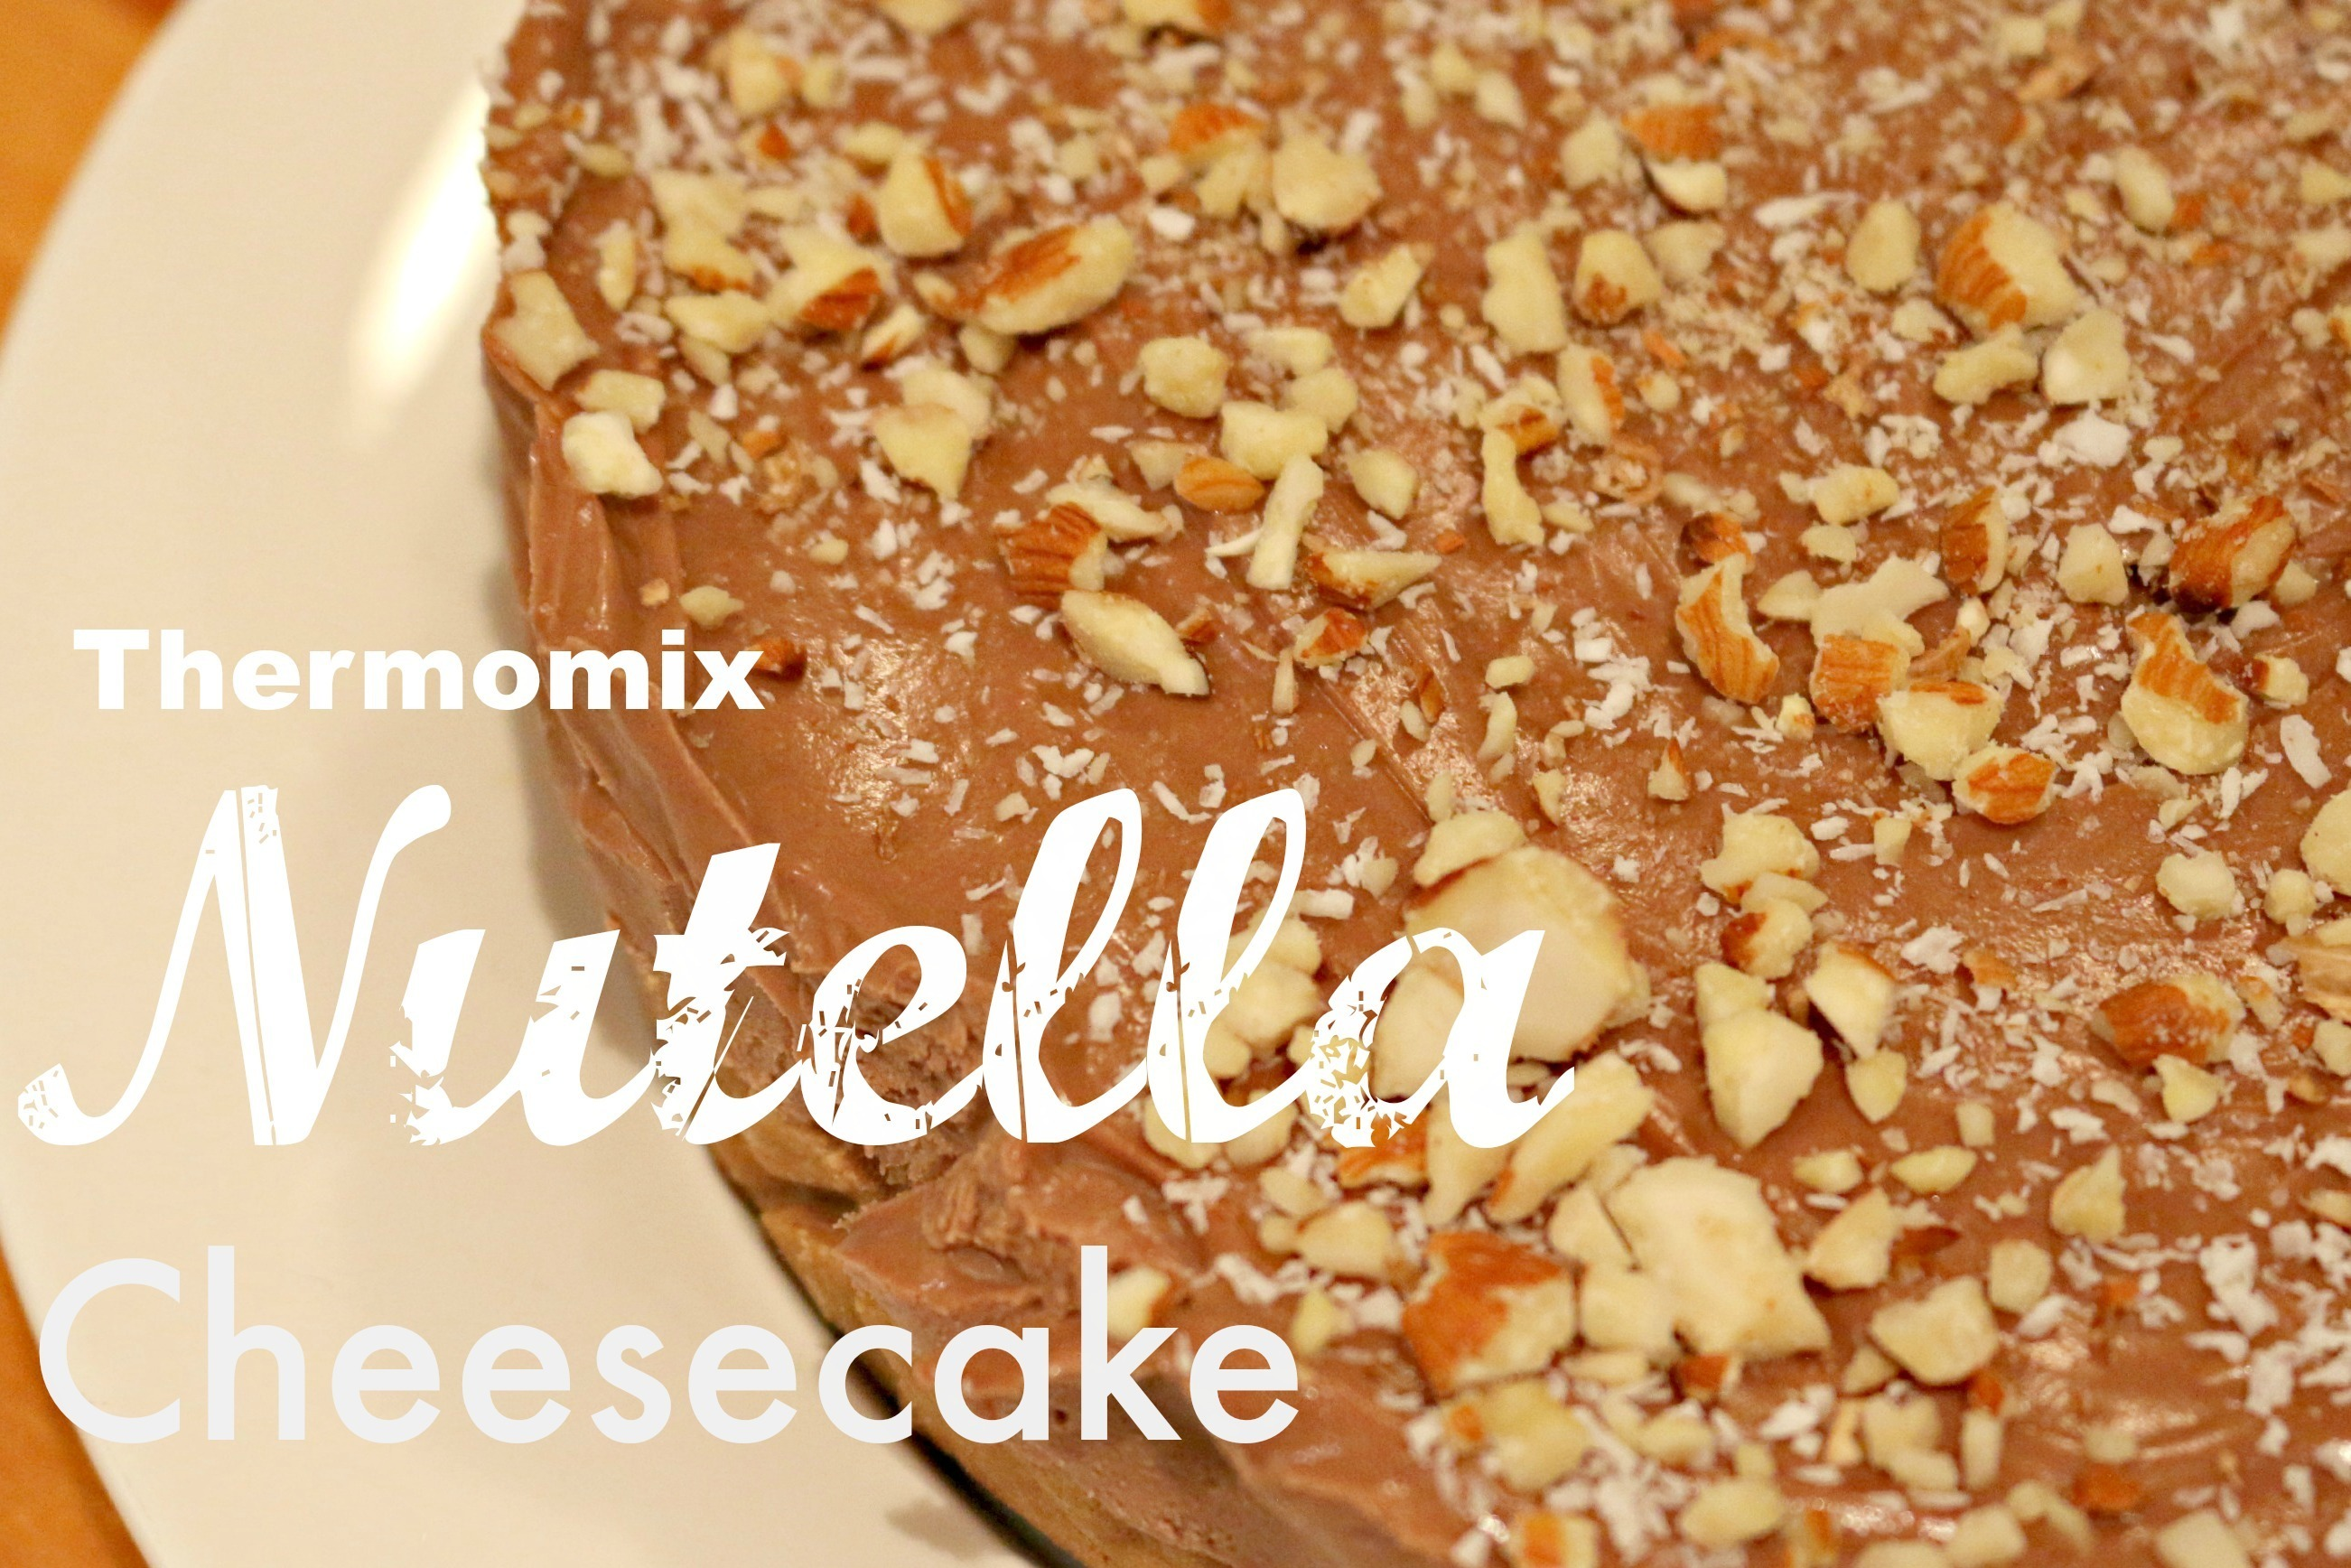 Thermomix nutella cheesecake